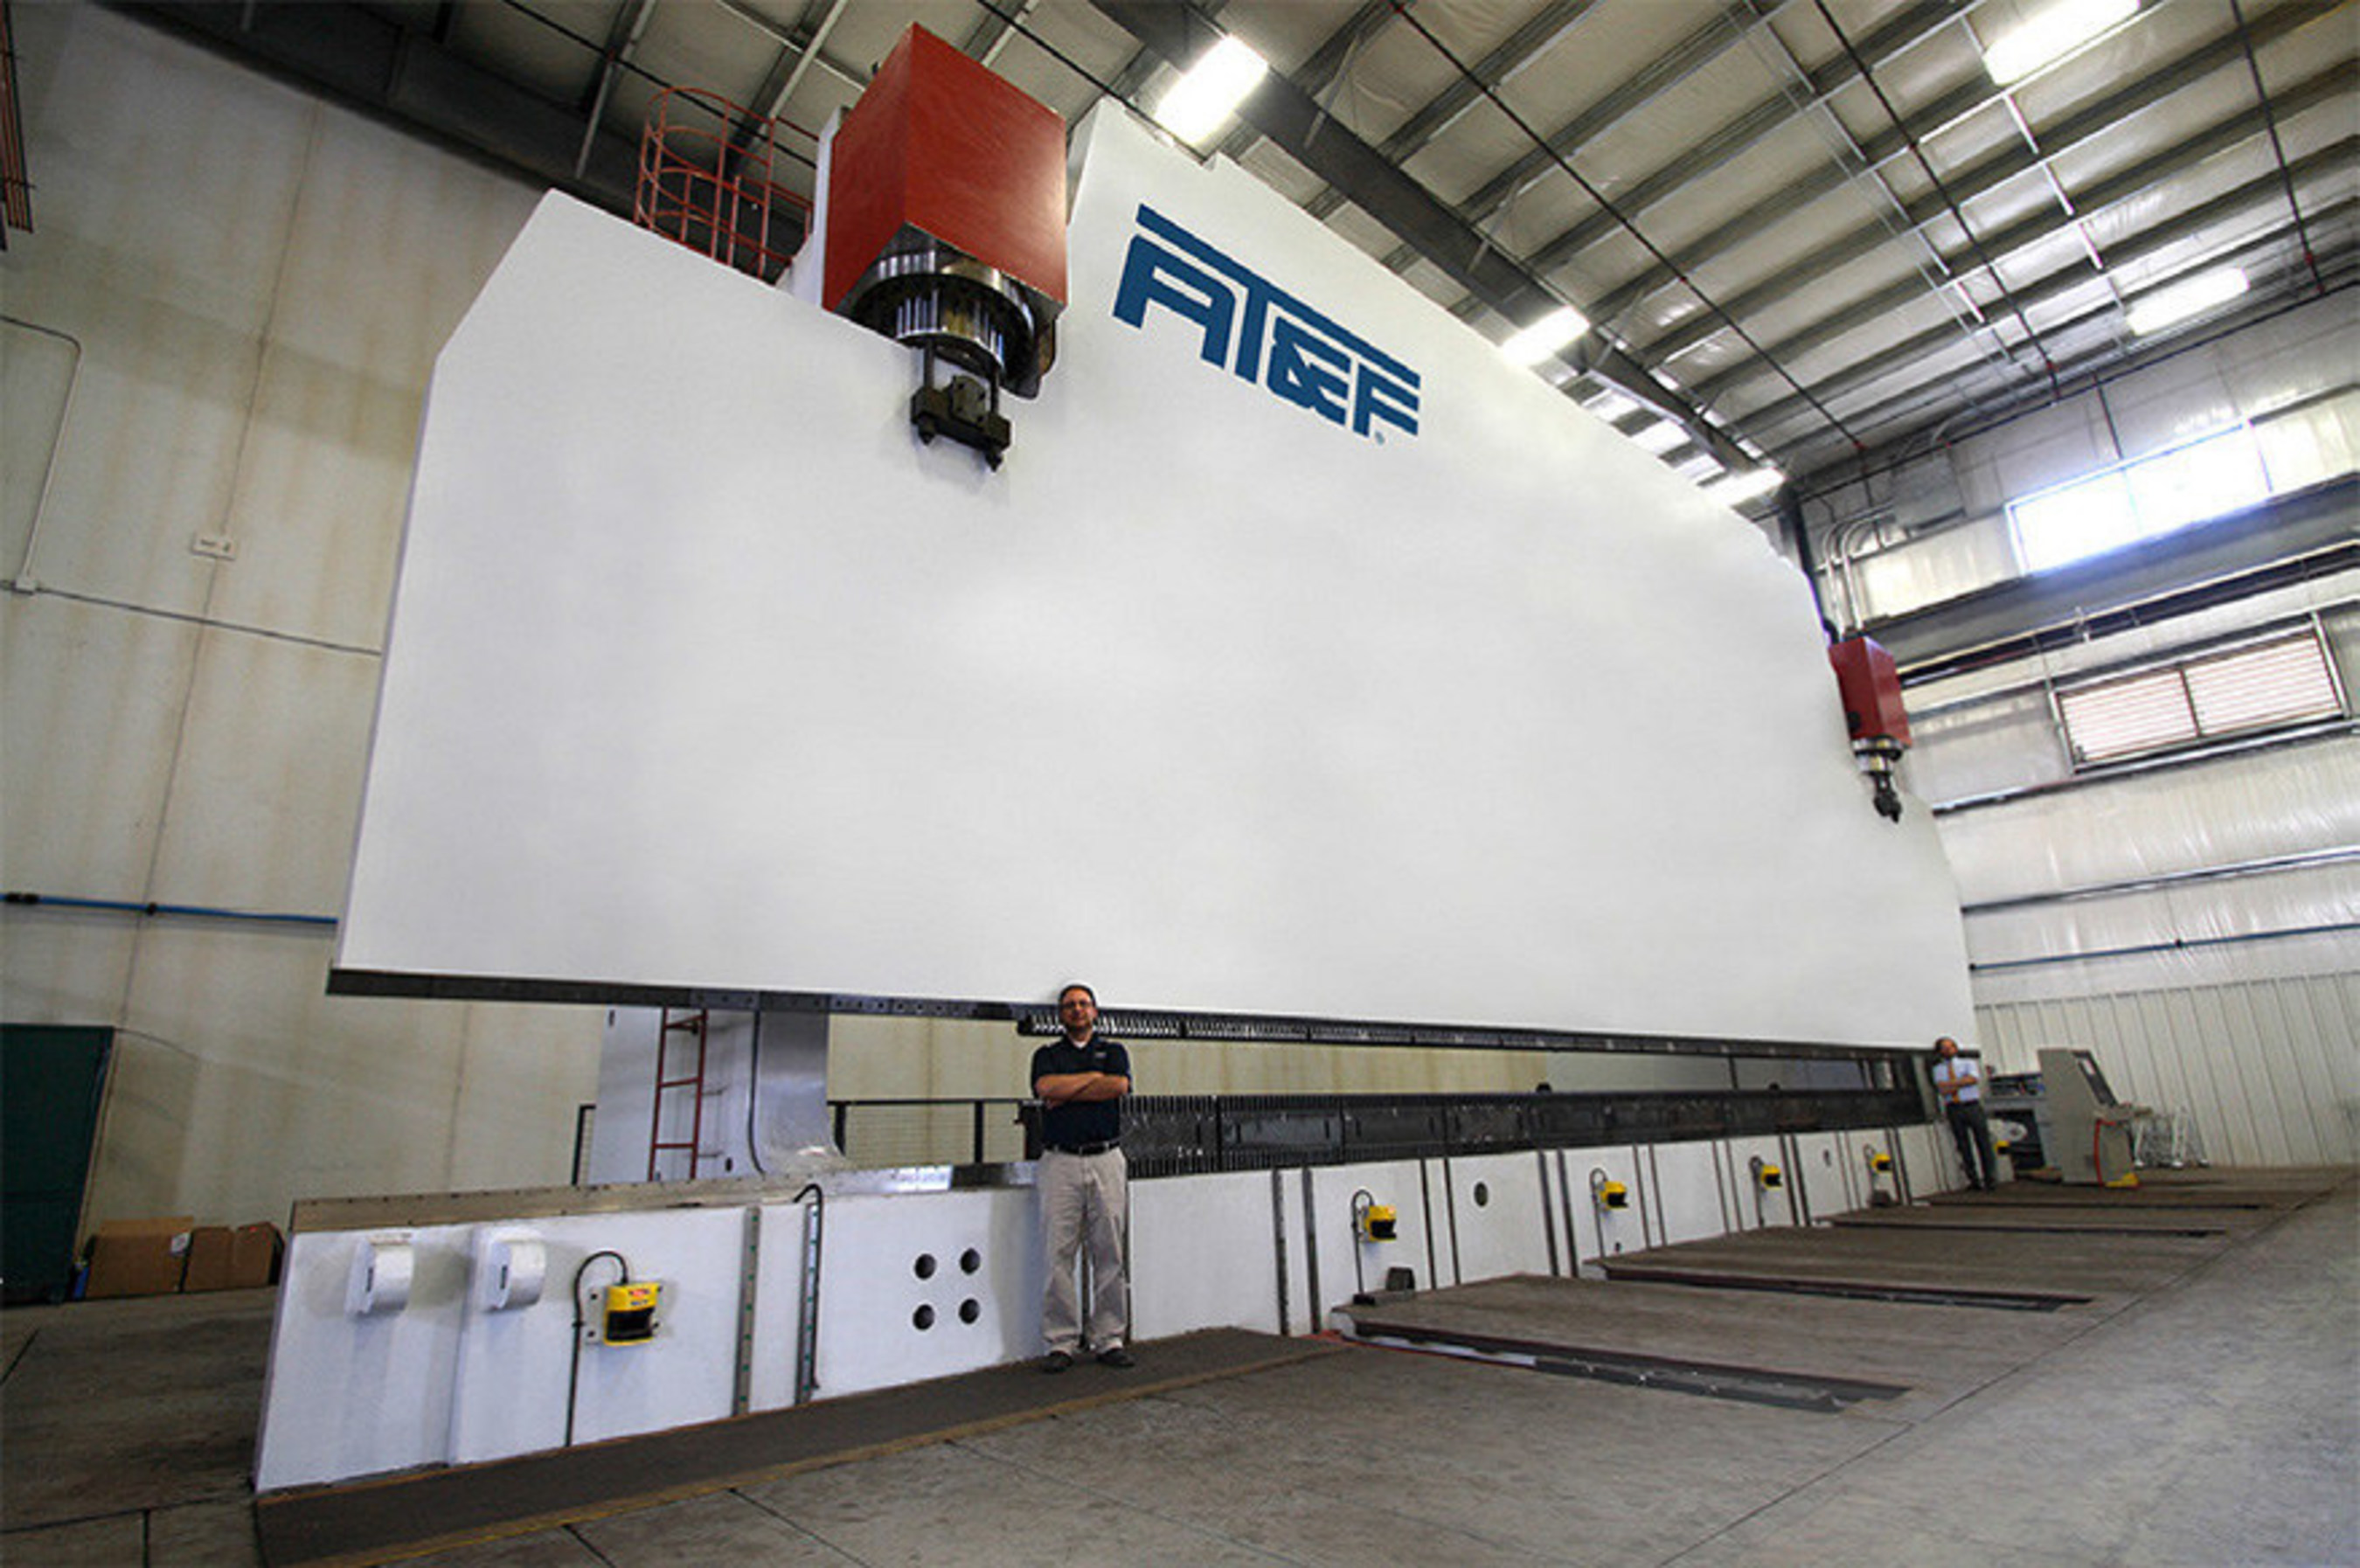 AT&F's state-of-the-art 60-foot press brake